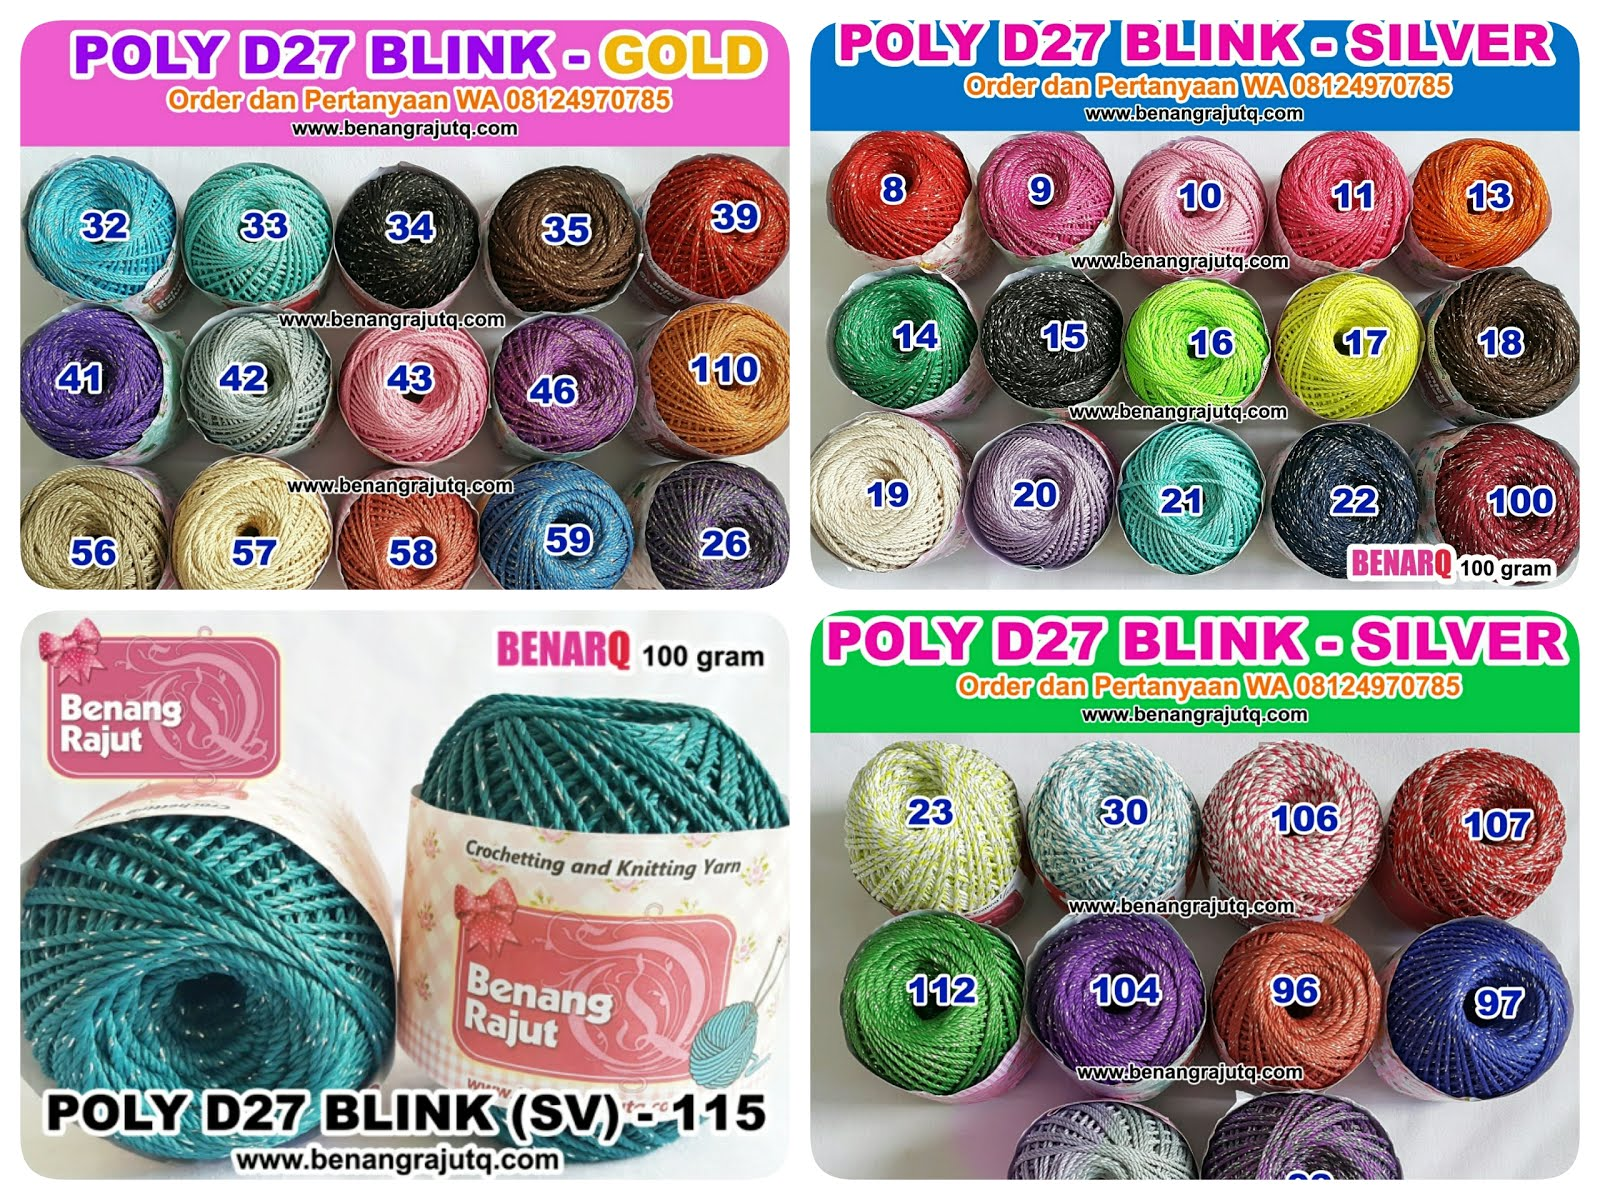 POLYESTER BLINK/GLITTER D27 TWIST GOLD ATAU SILVER